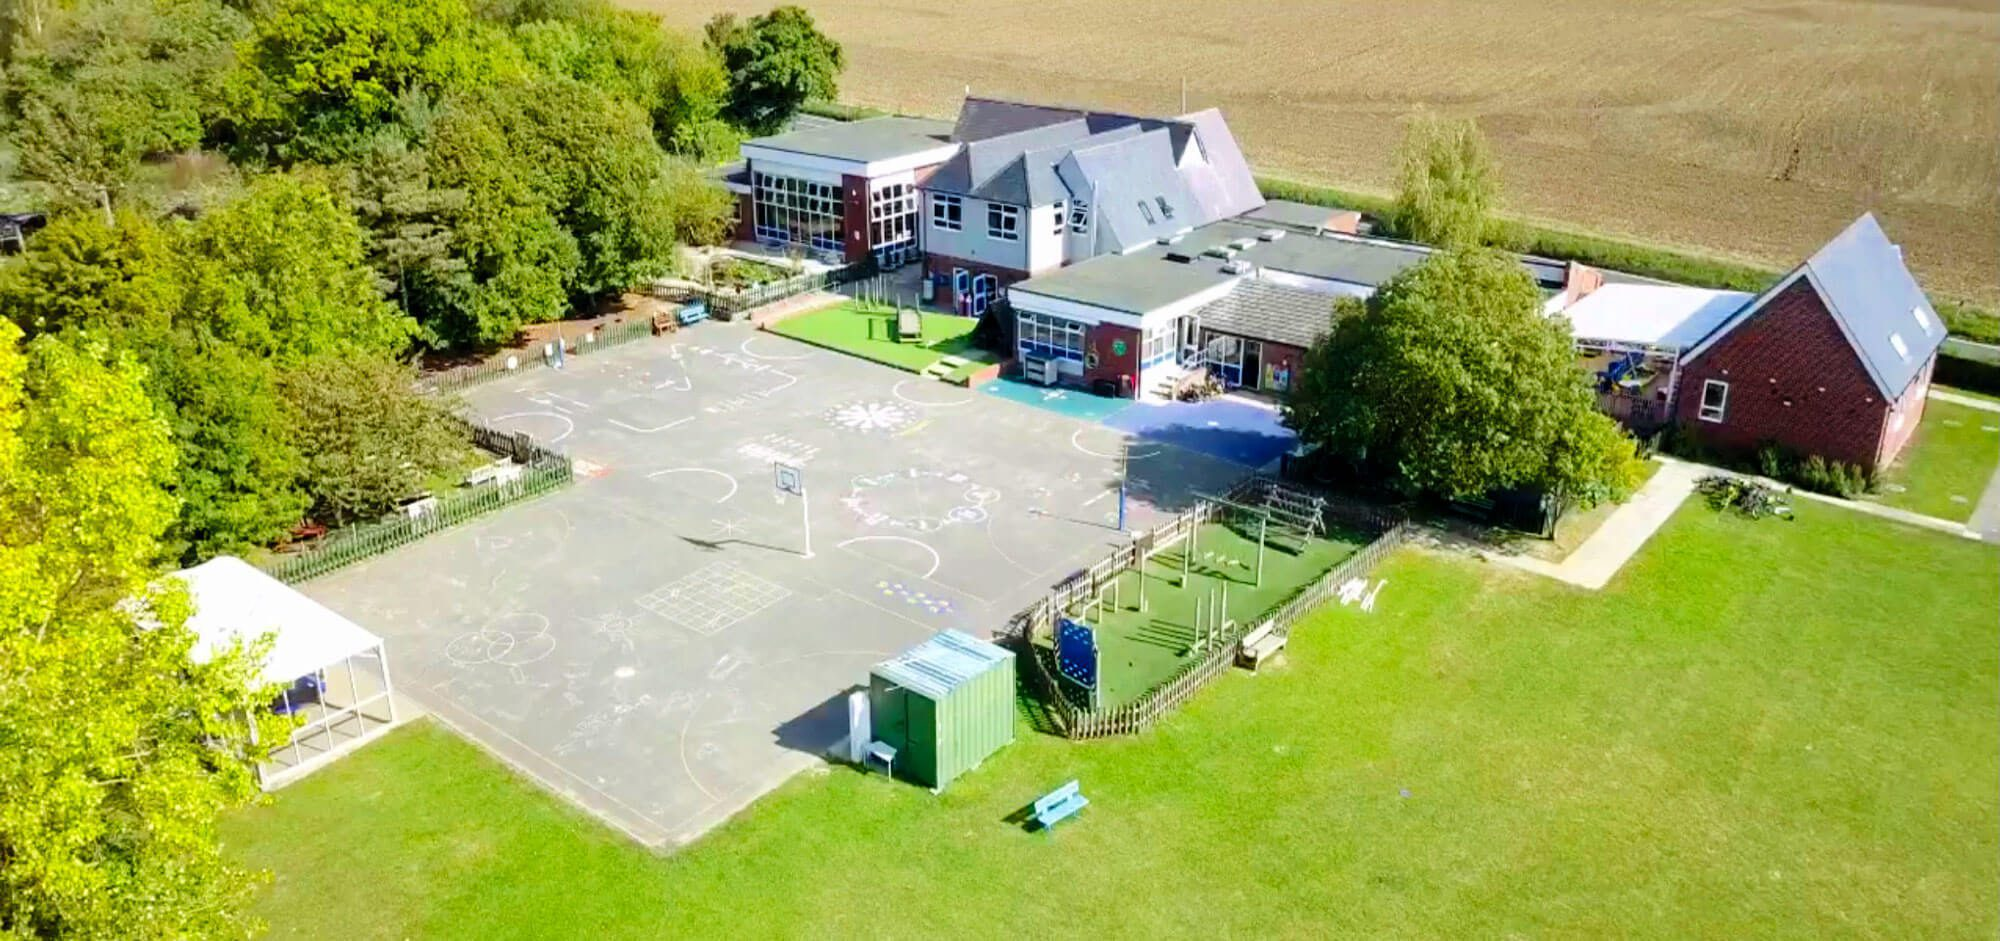 Great Easton Primary School arial view